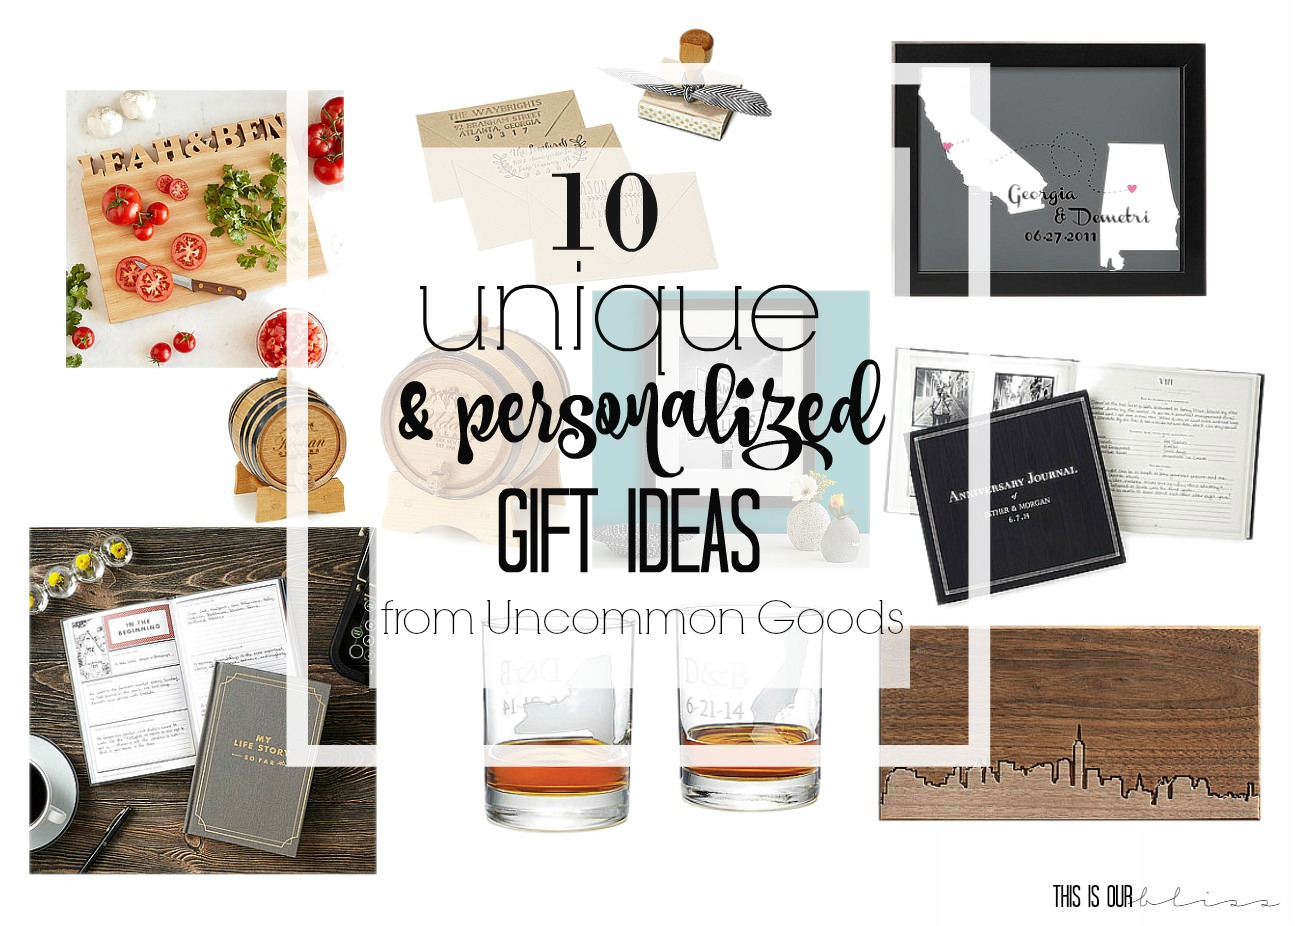 Where to buy unique and personalized gifts 10 unique and personalized gift ideas from uncommongoods this is our bliss solutioingenieria Image collections